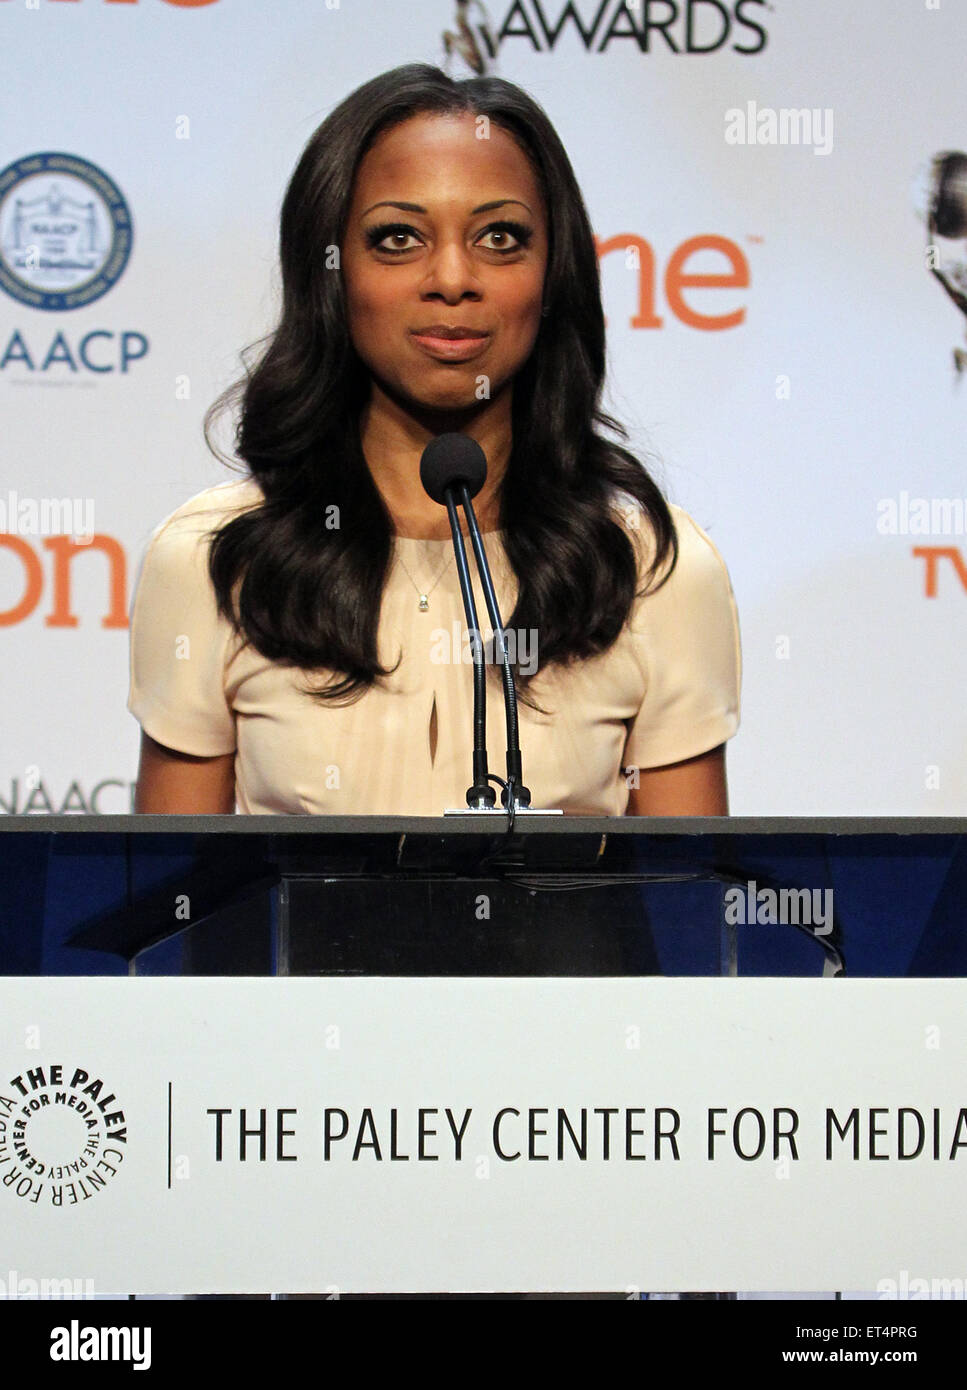 46th NAACP Image Awards - Nomination Announcement and Press Conference  Featuring: Nischelle Turner Where: Beverly Stock Photo